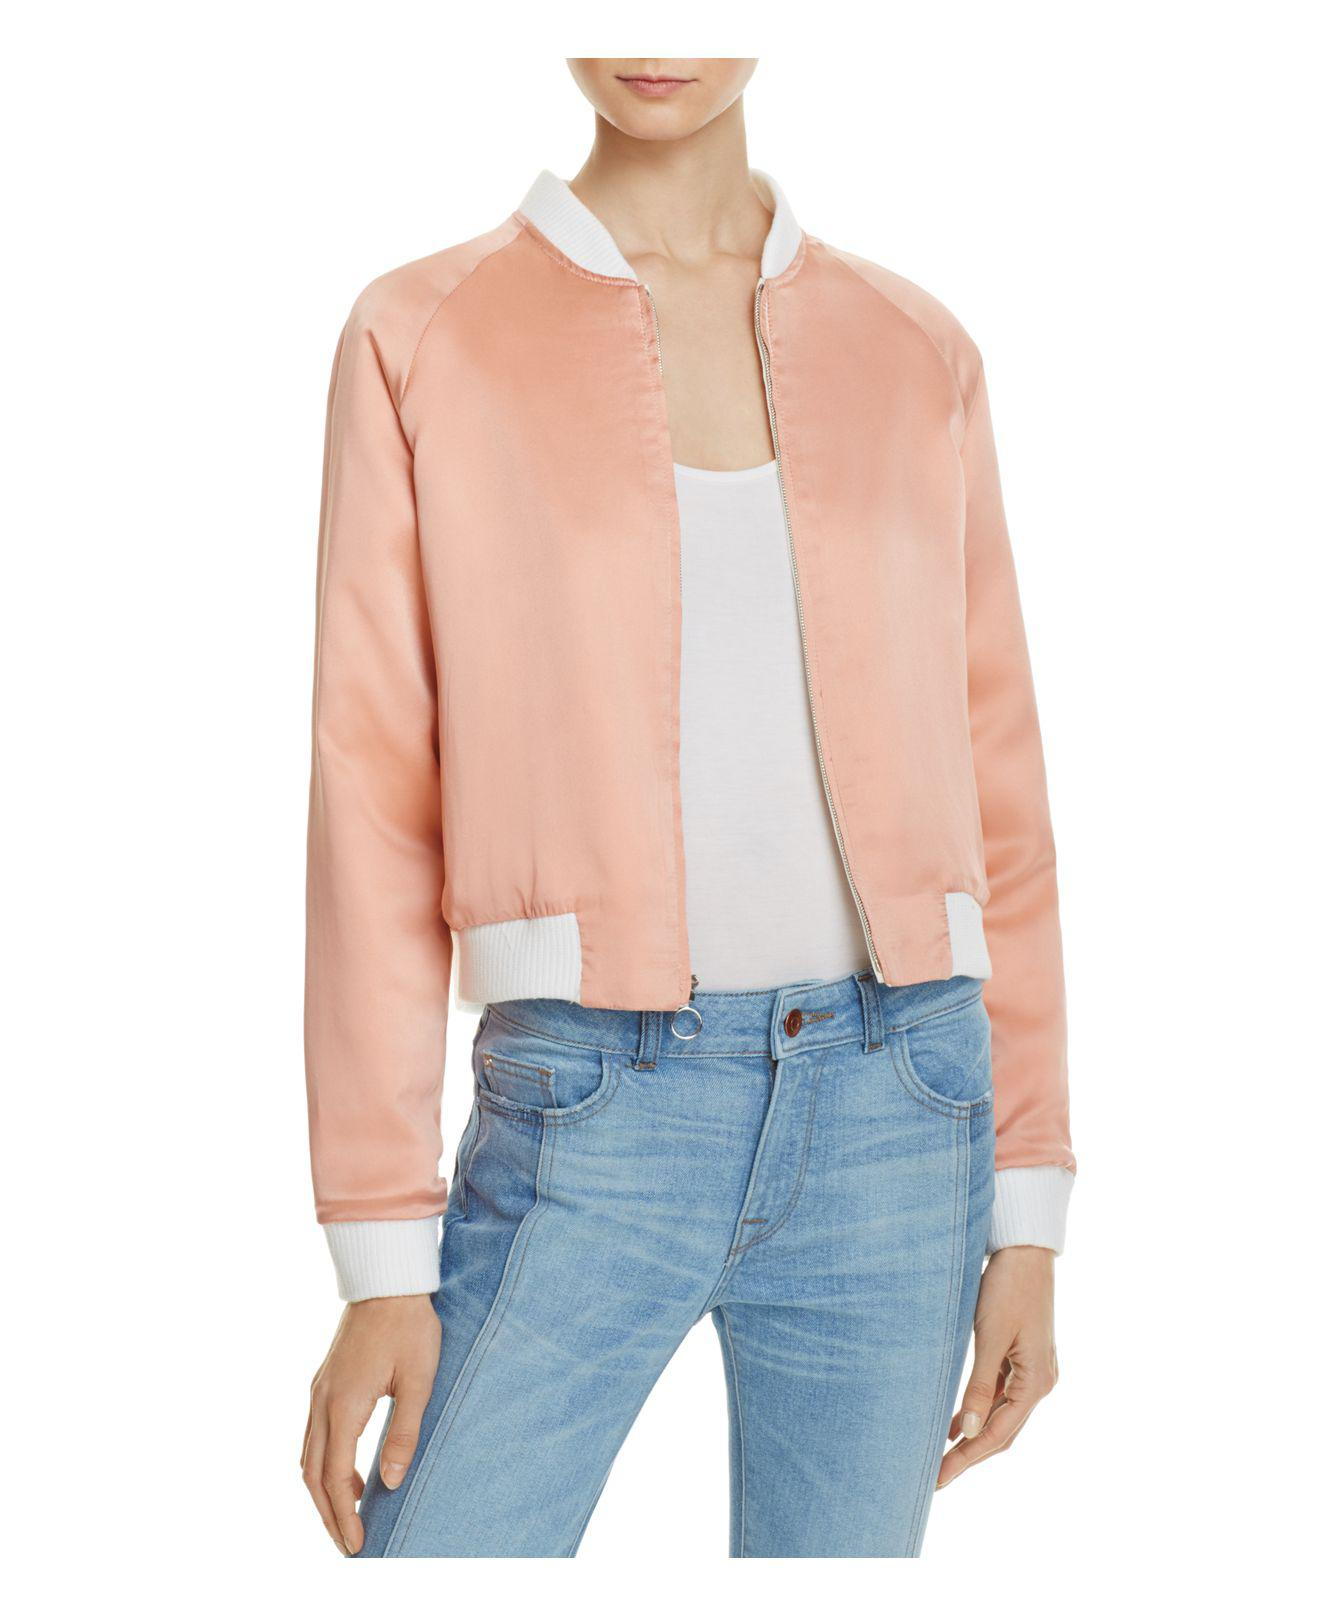 5ec876a57ac3 Elizabeth and James Willa Reversible Bomber Jacket in White - Lyst